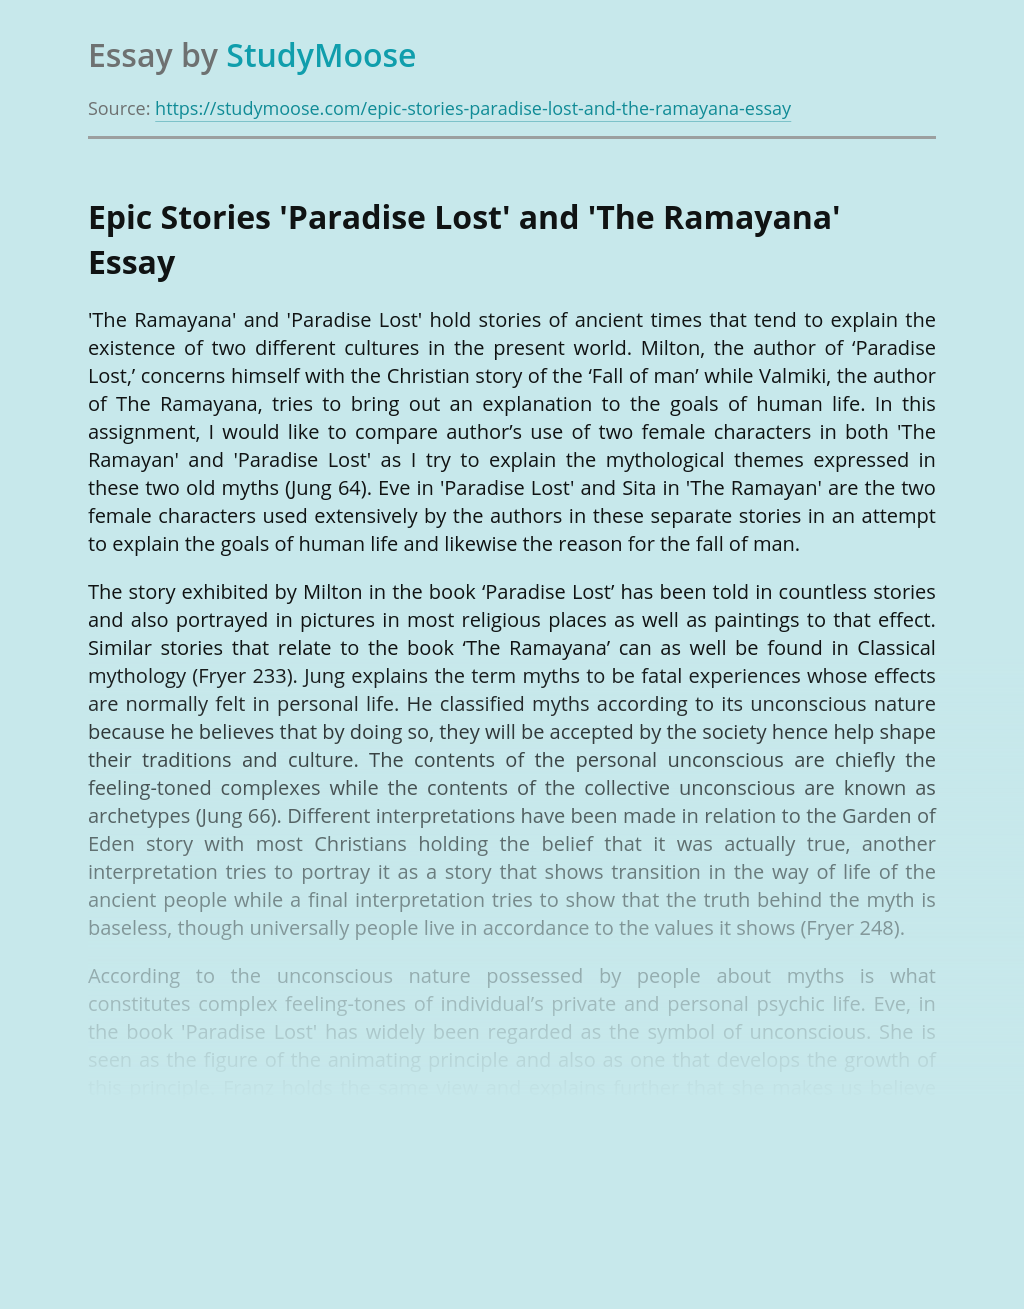 Epic Stories 'Paradise Lost' and 'The Ramayana'